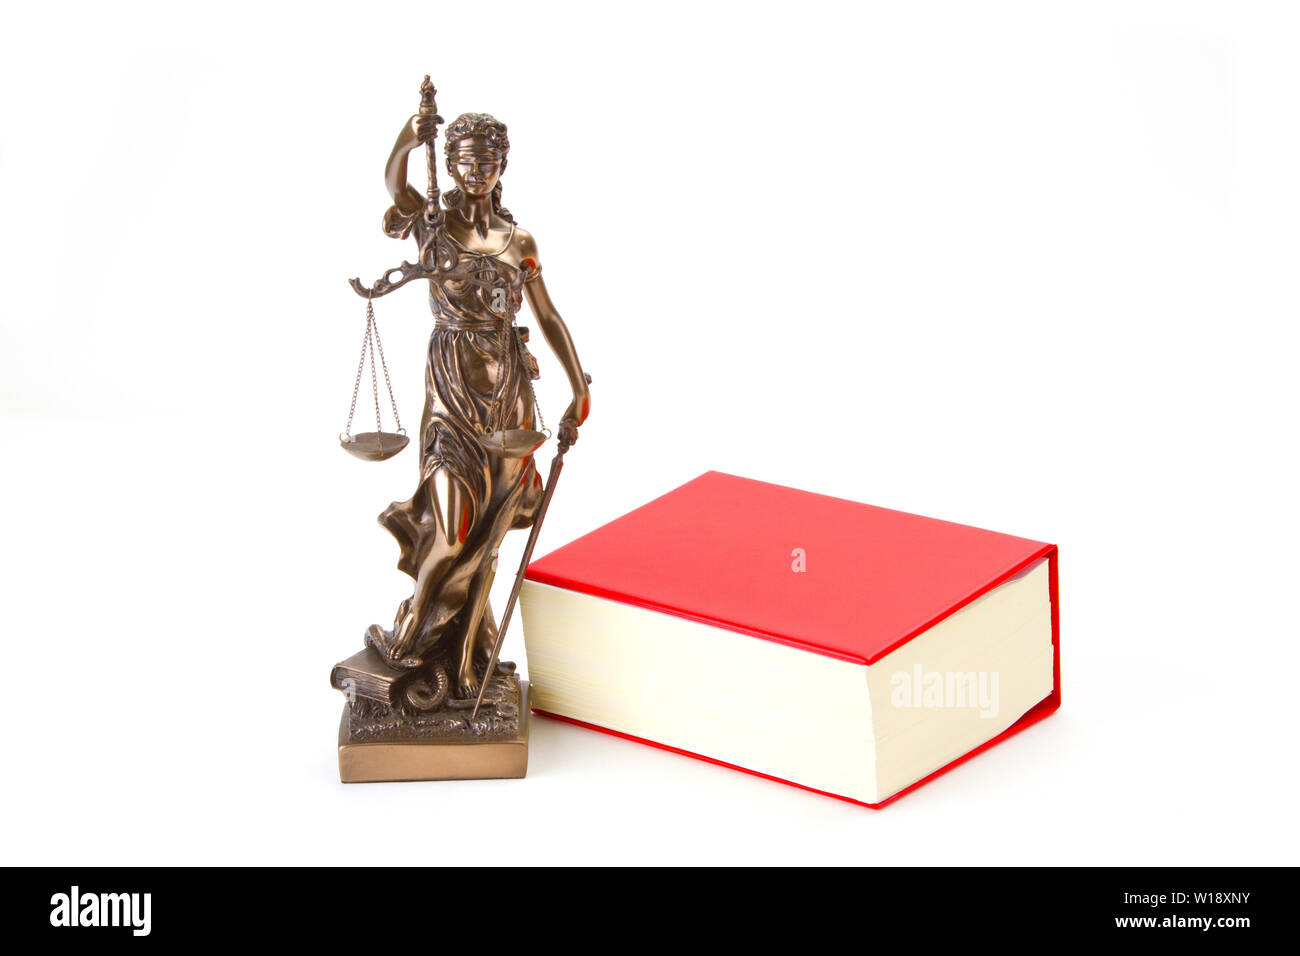 law,justice,justitia - Stock Image